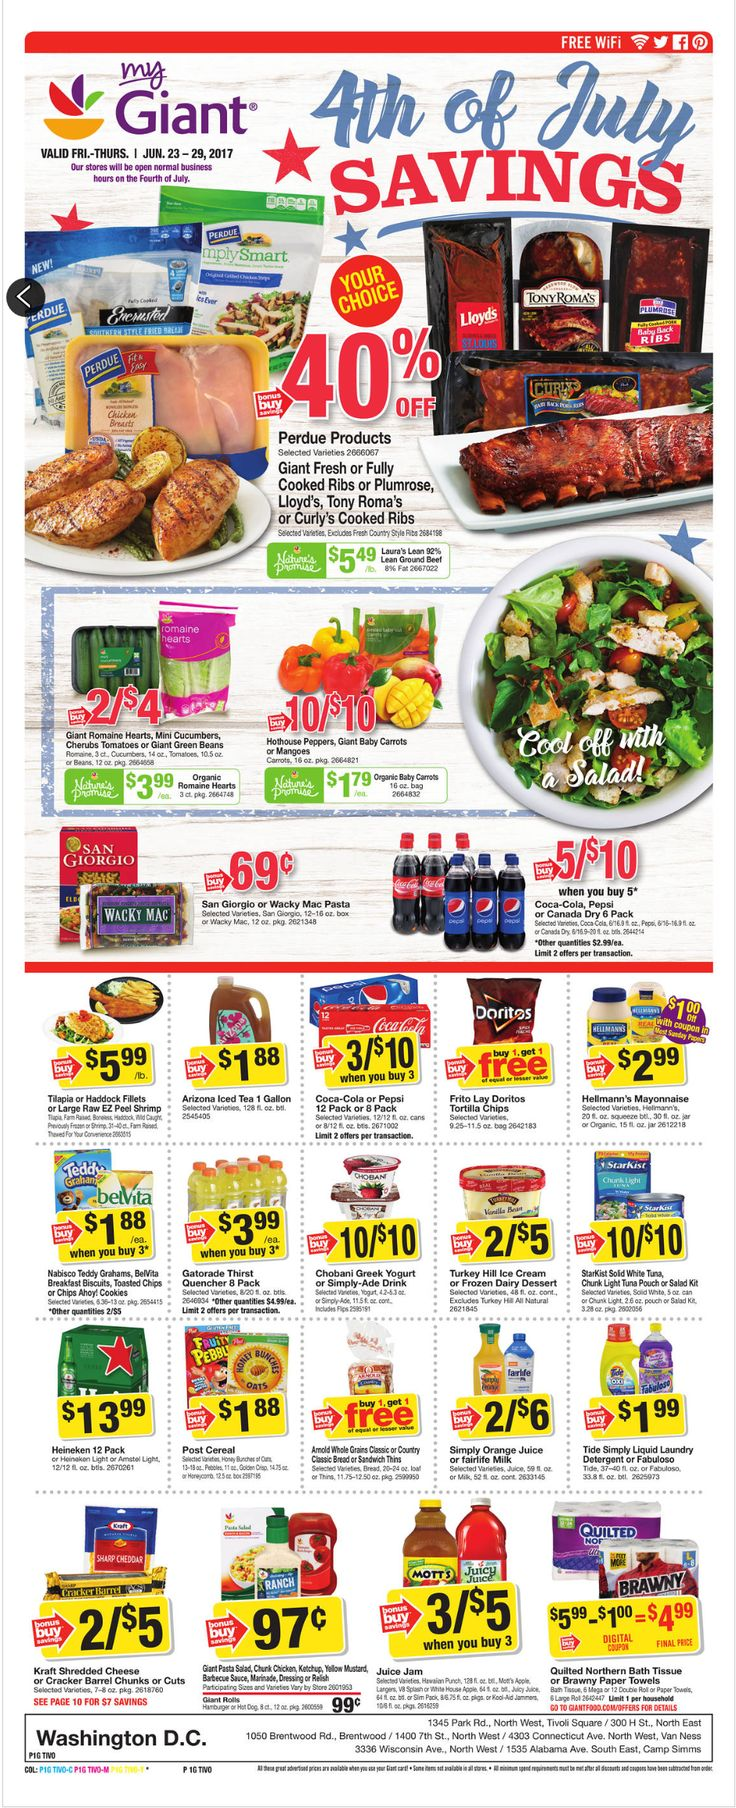 Giant Food Weekly Ad June 23 - 29, 2017 - http://www.olcatalog.com/grocery/giant-food-weekly-ad.html